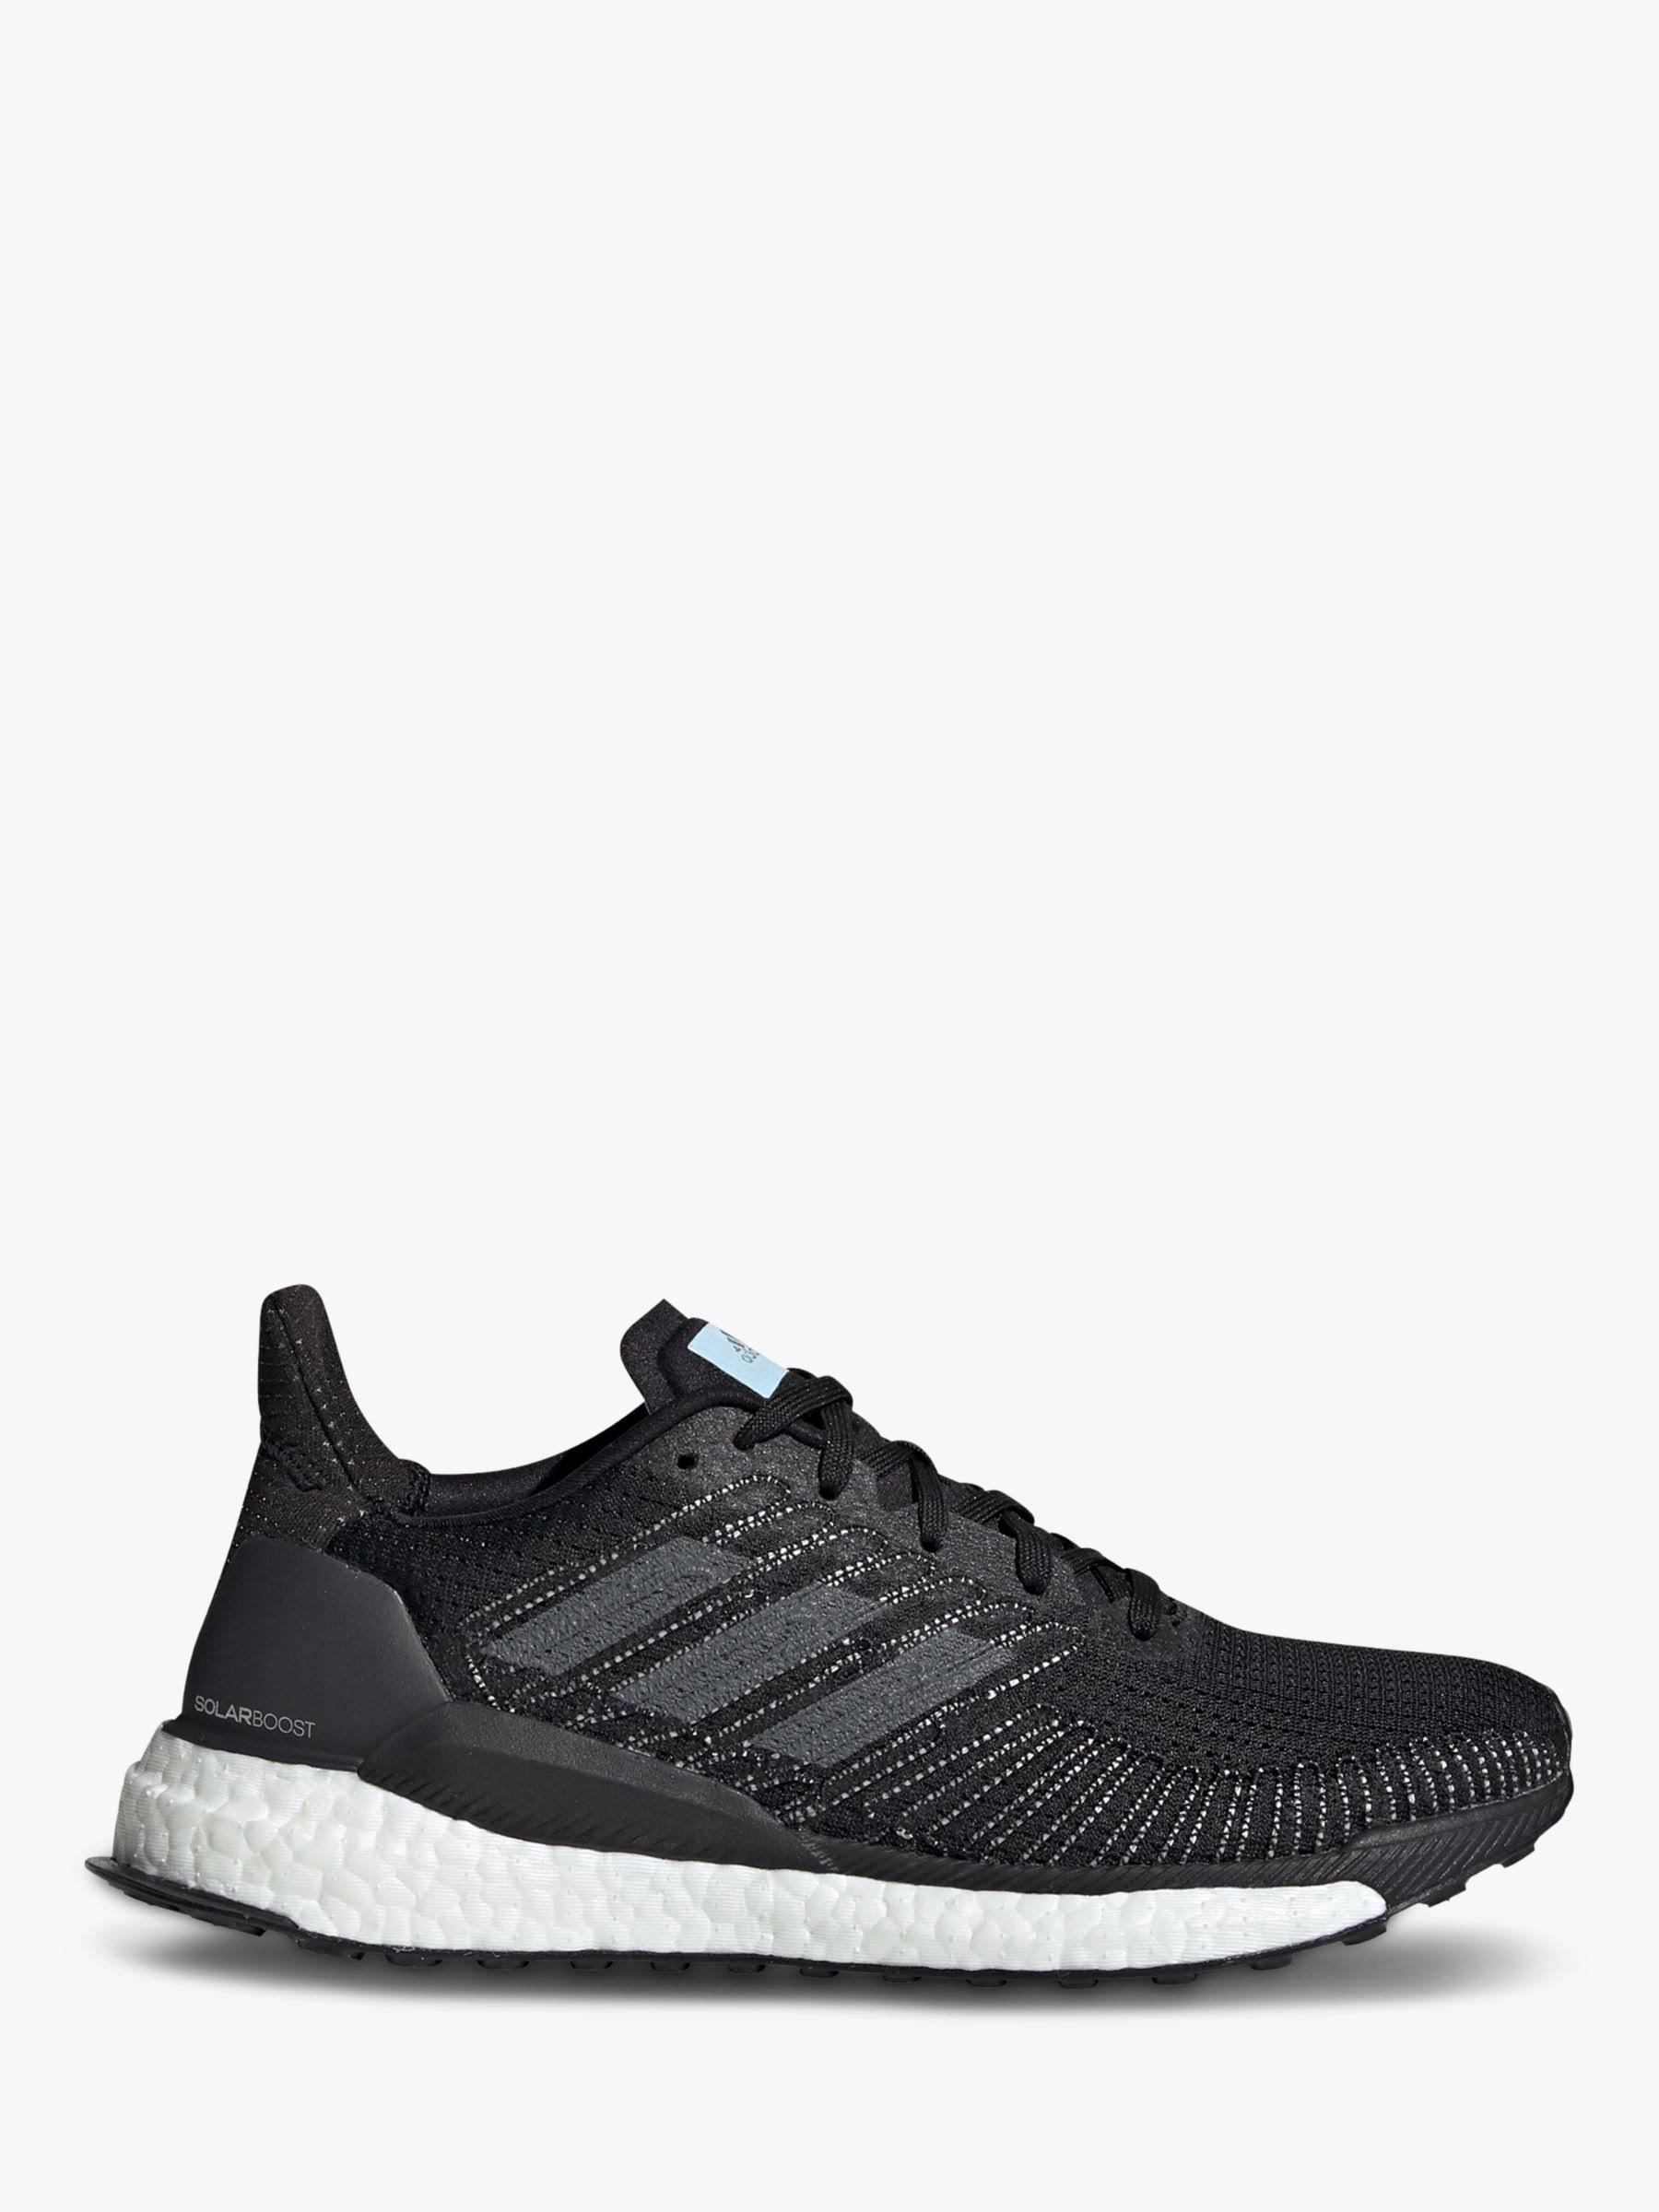 Adidas Solarboost 19 Shoes Running - Black - Women